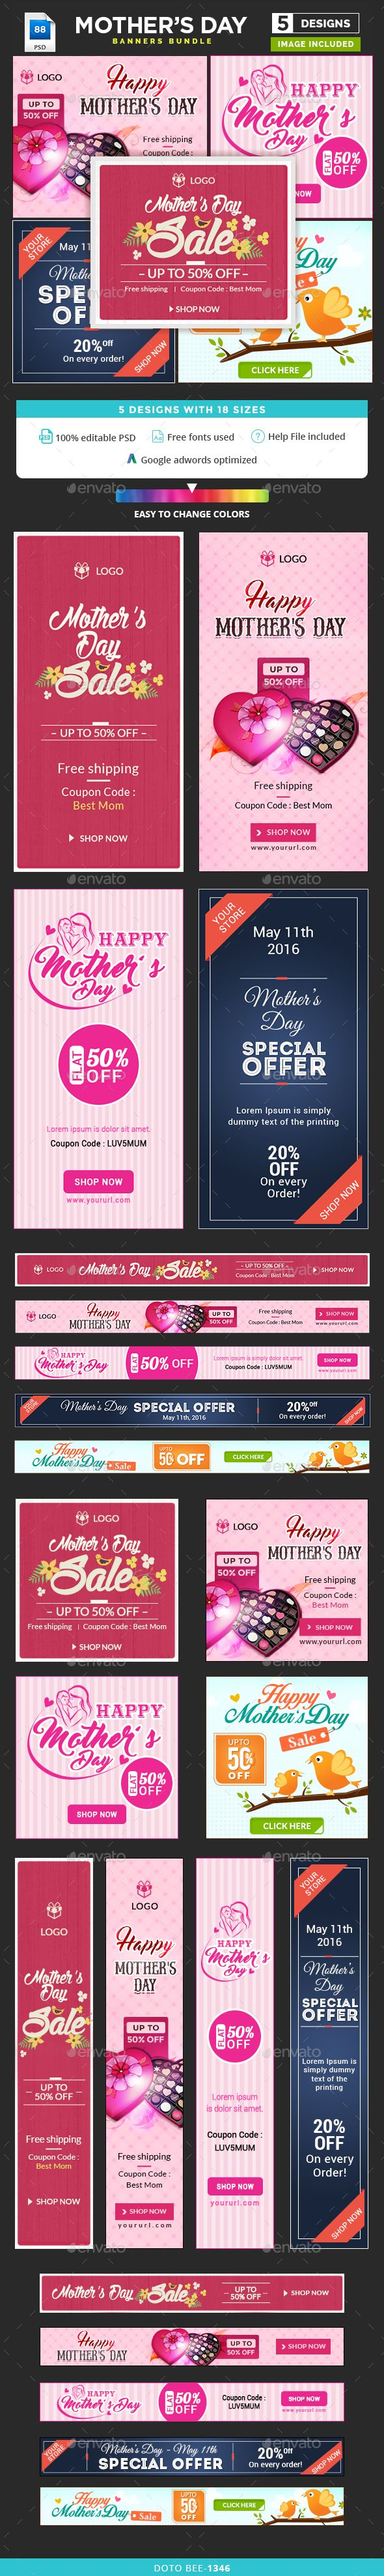 Mother's Day Banners Bundle - 5 Sets - 88 Banners Templates PSD. Download here: http://graphicriver.net/item/mothers-day-banners-bundle-5-sets-88-banners/15930861?ref=ksioks